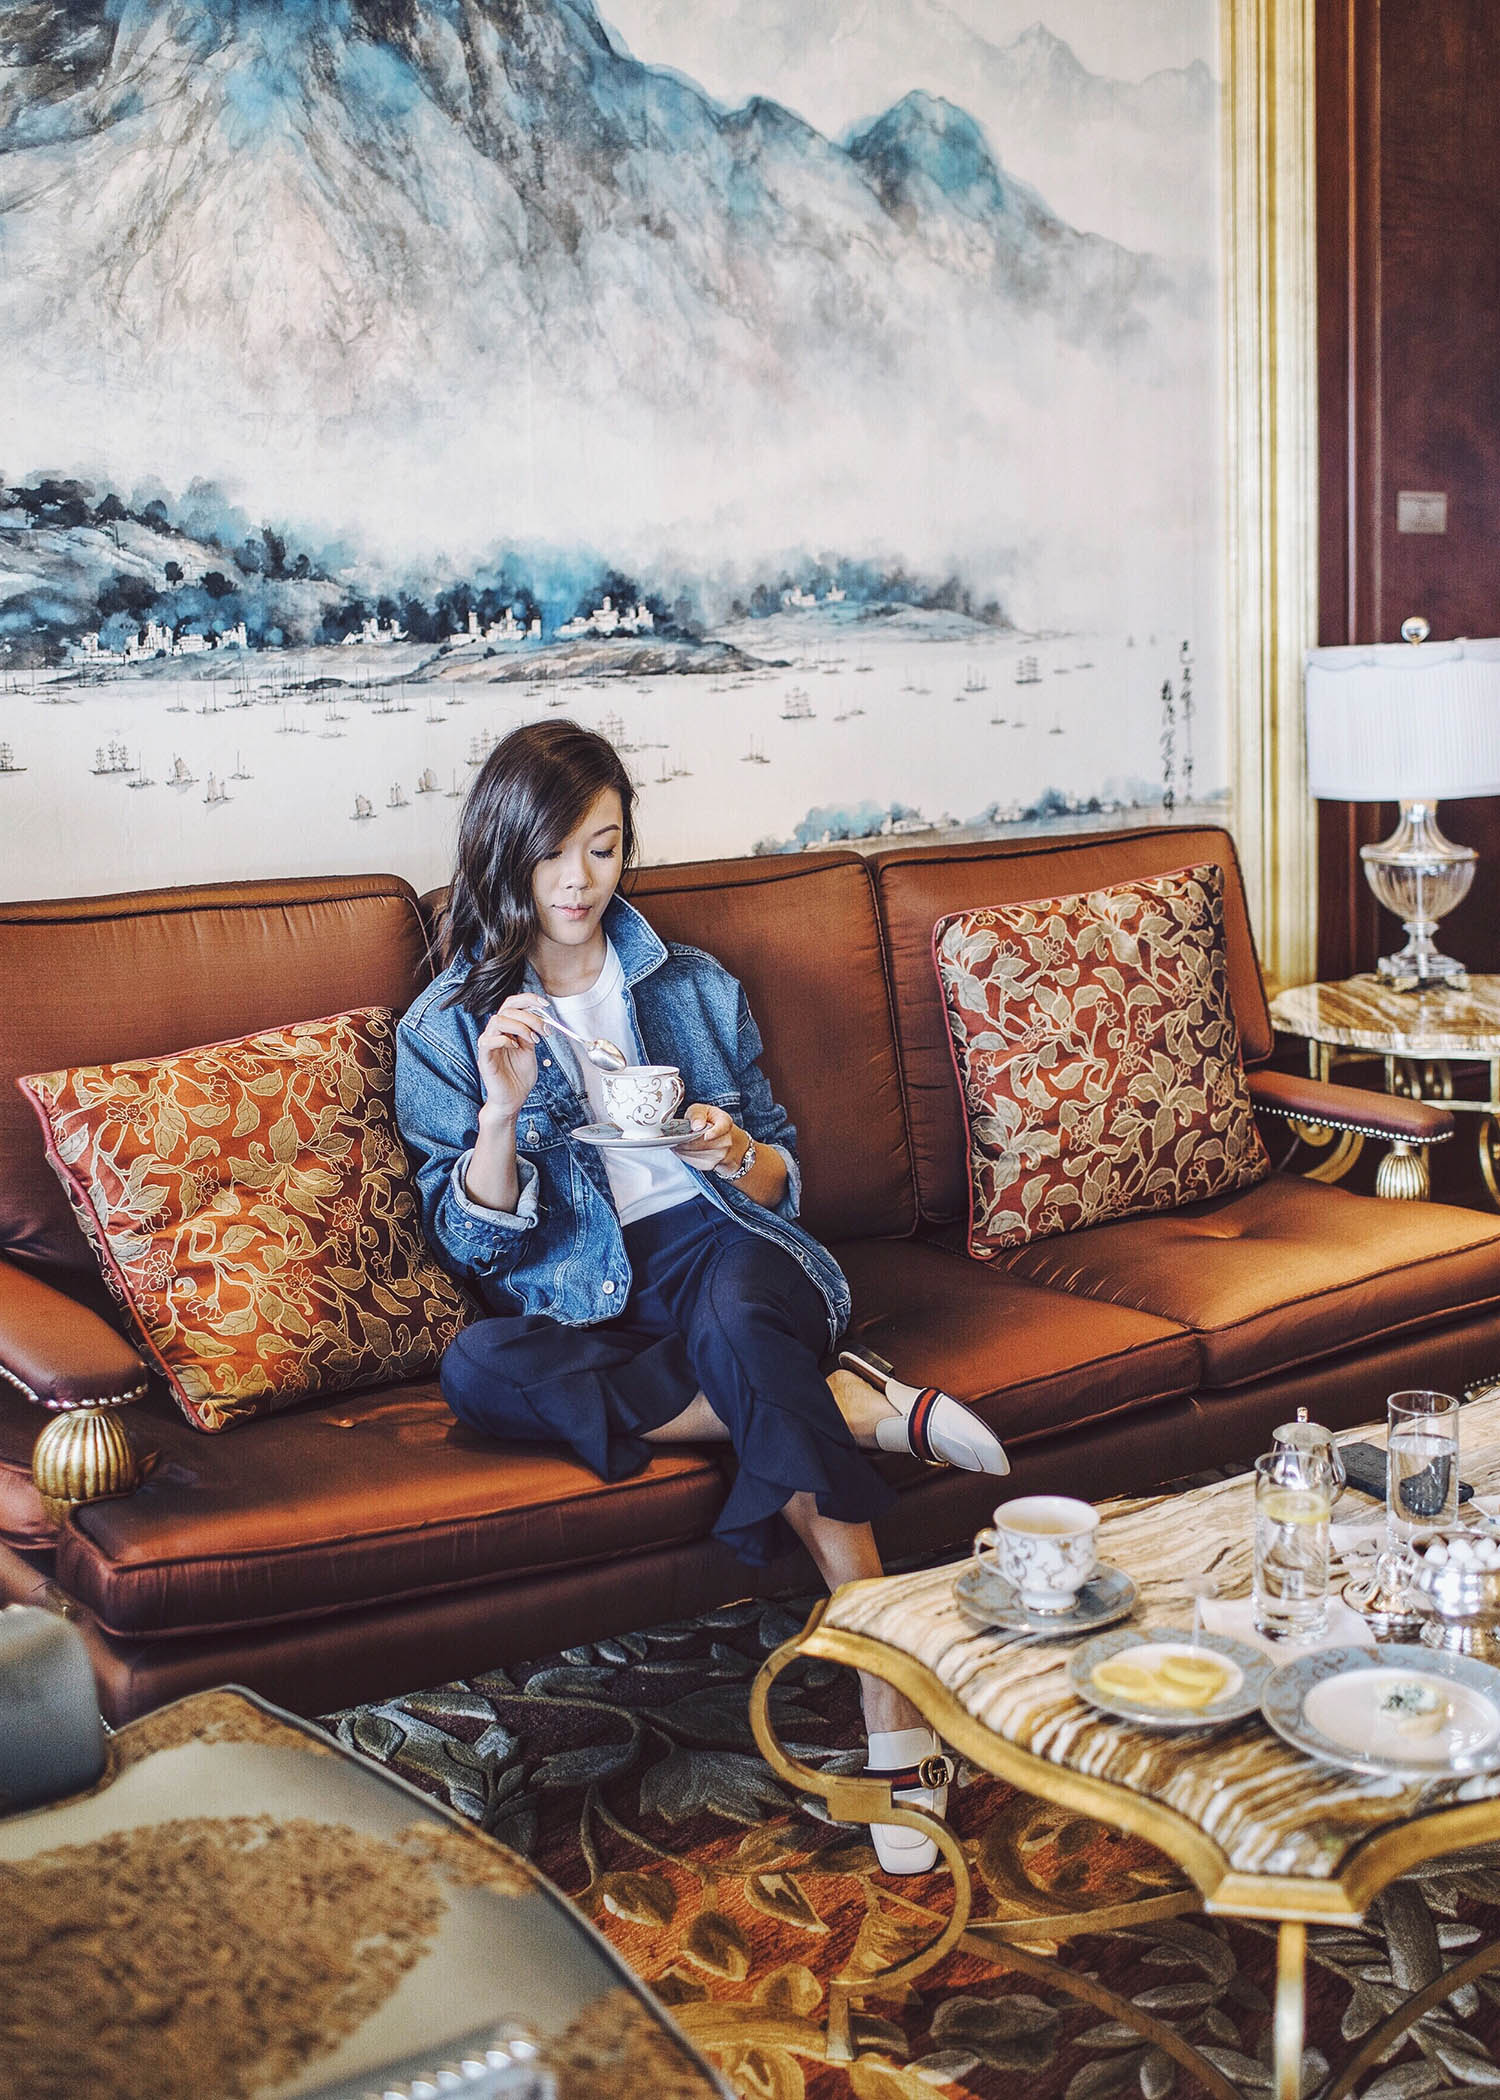 Fashion and travel blogger influencer Jenny Tsang of Tsangtastic traveling in Hong Kong, wearing H&M Denim Lace-Up Jacket, C/MEO COLLECTIVE Pants, GUCCI White Leather Slipper, at the Island Shangri-La Hotel.